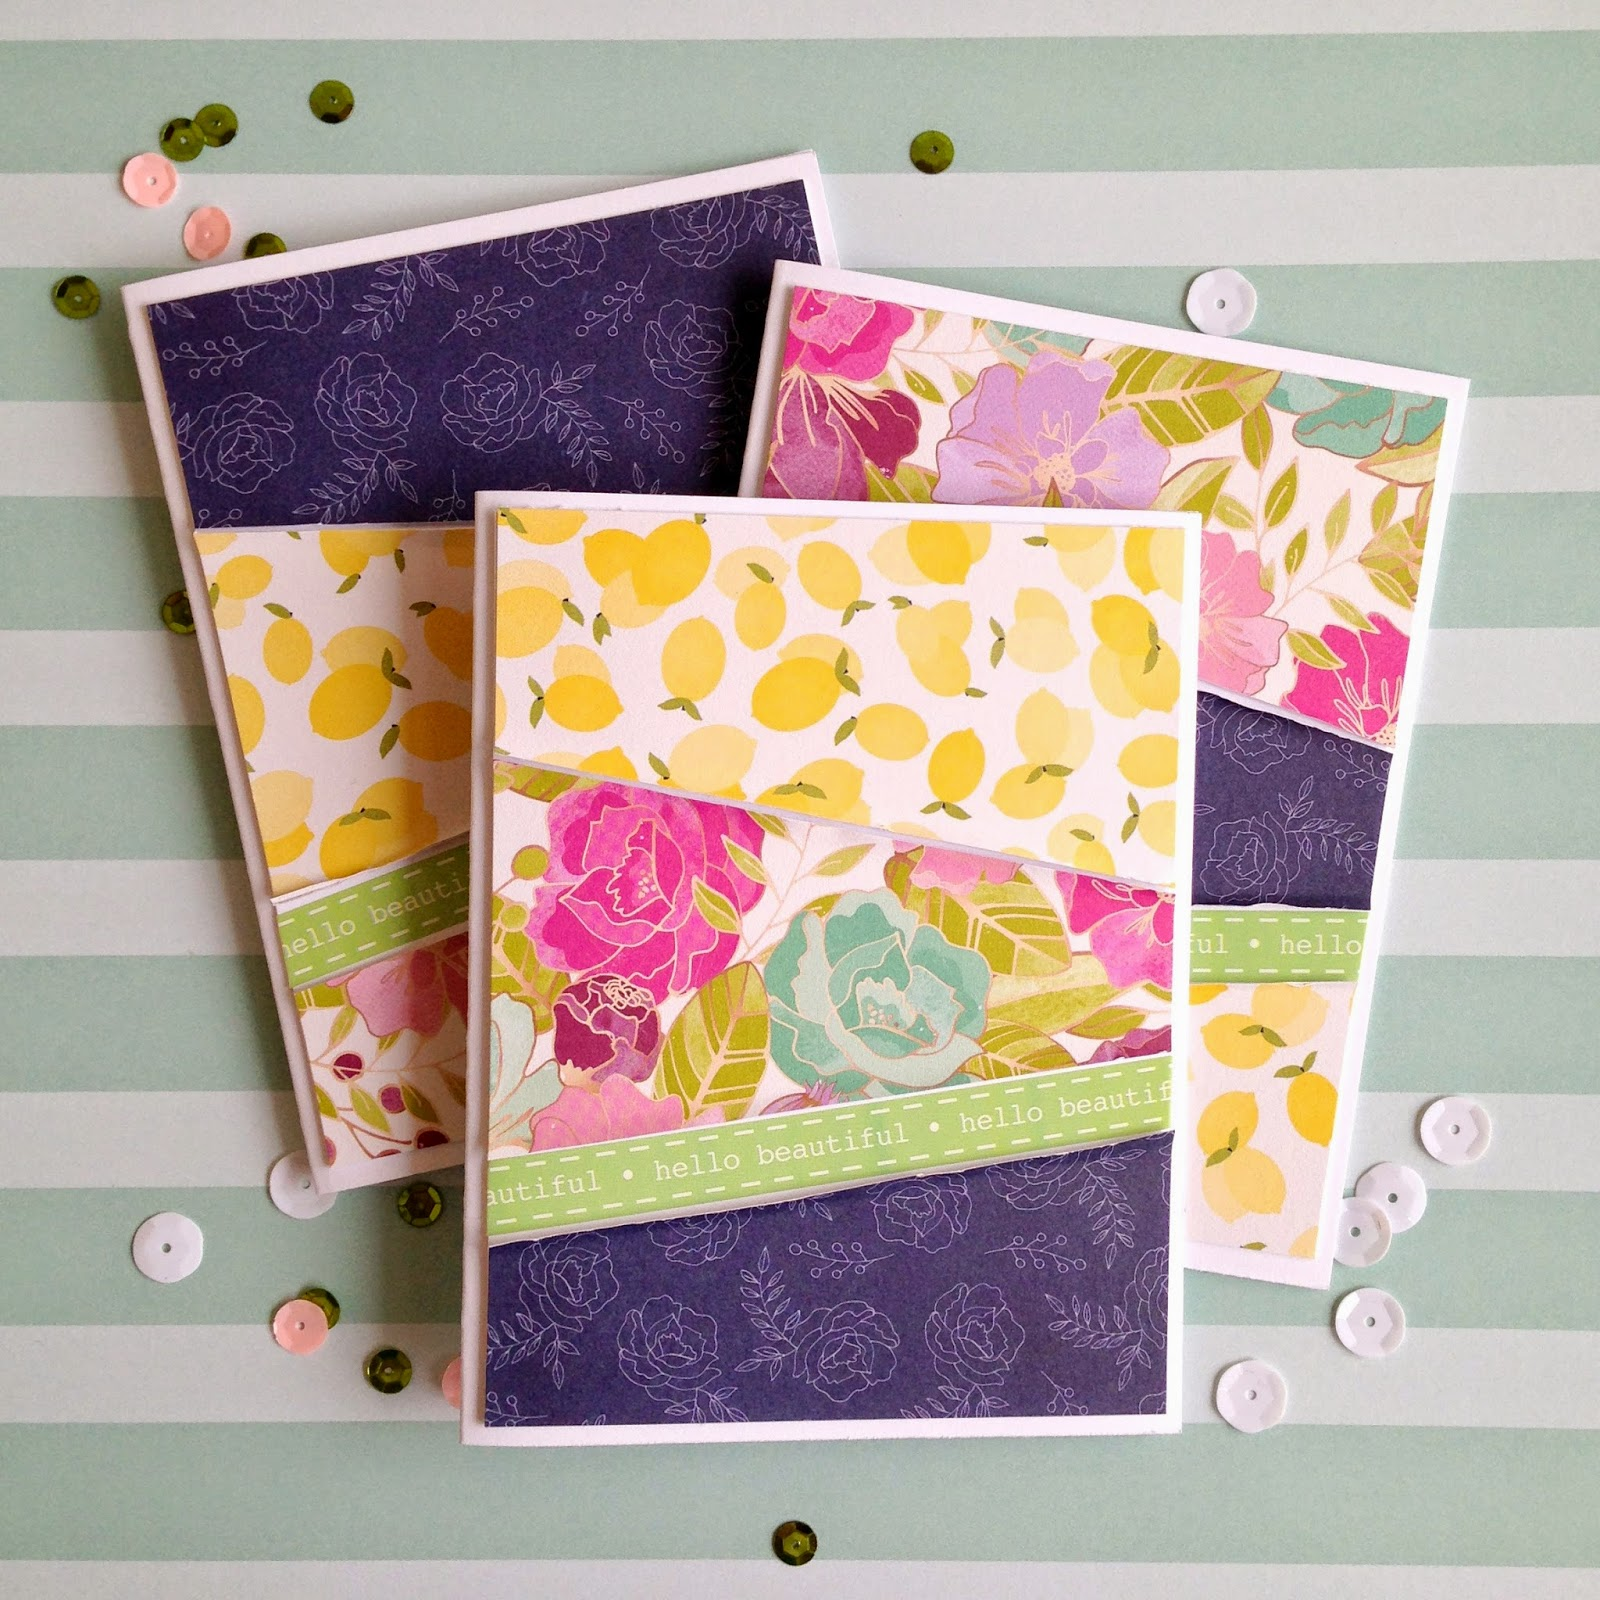 SRM Stickers Blog - Serendipity Stationery Set by Tessa Buys - #cards #card set #DIY #A7 #box #glassine bag #border #stickers #gift